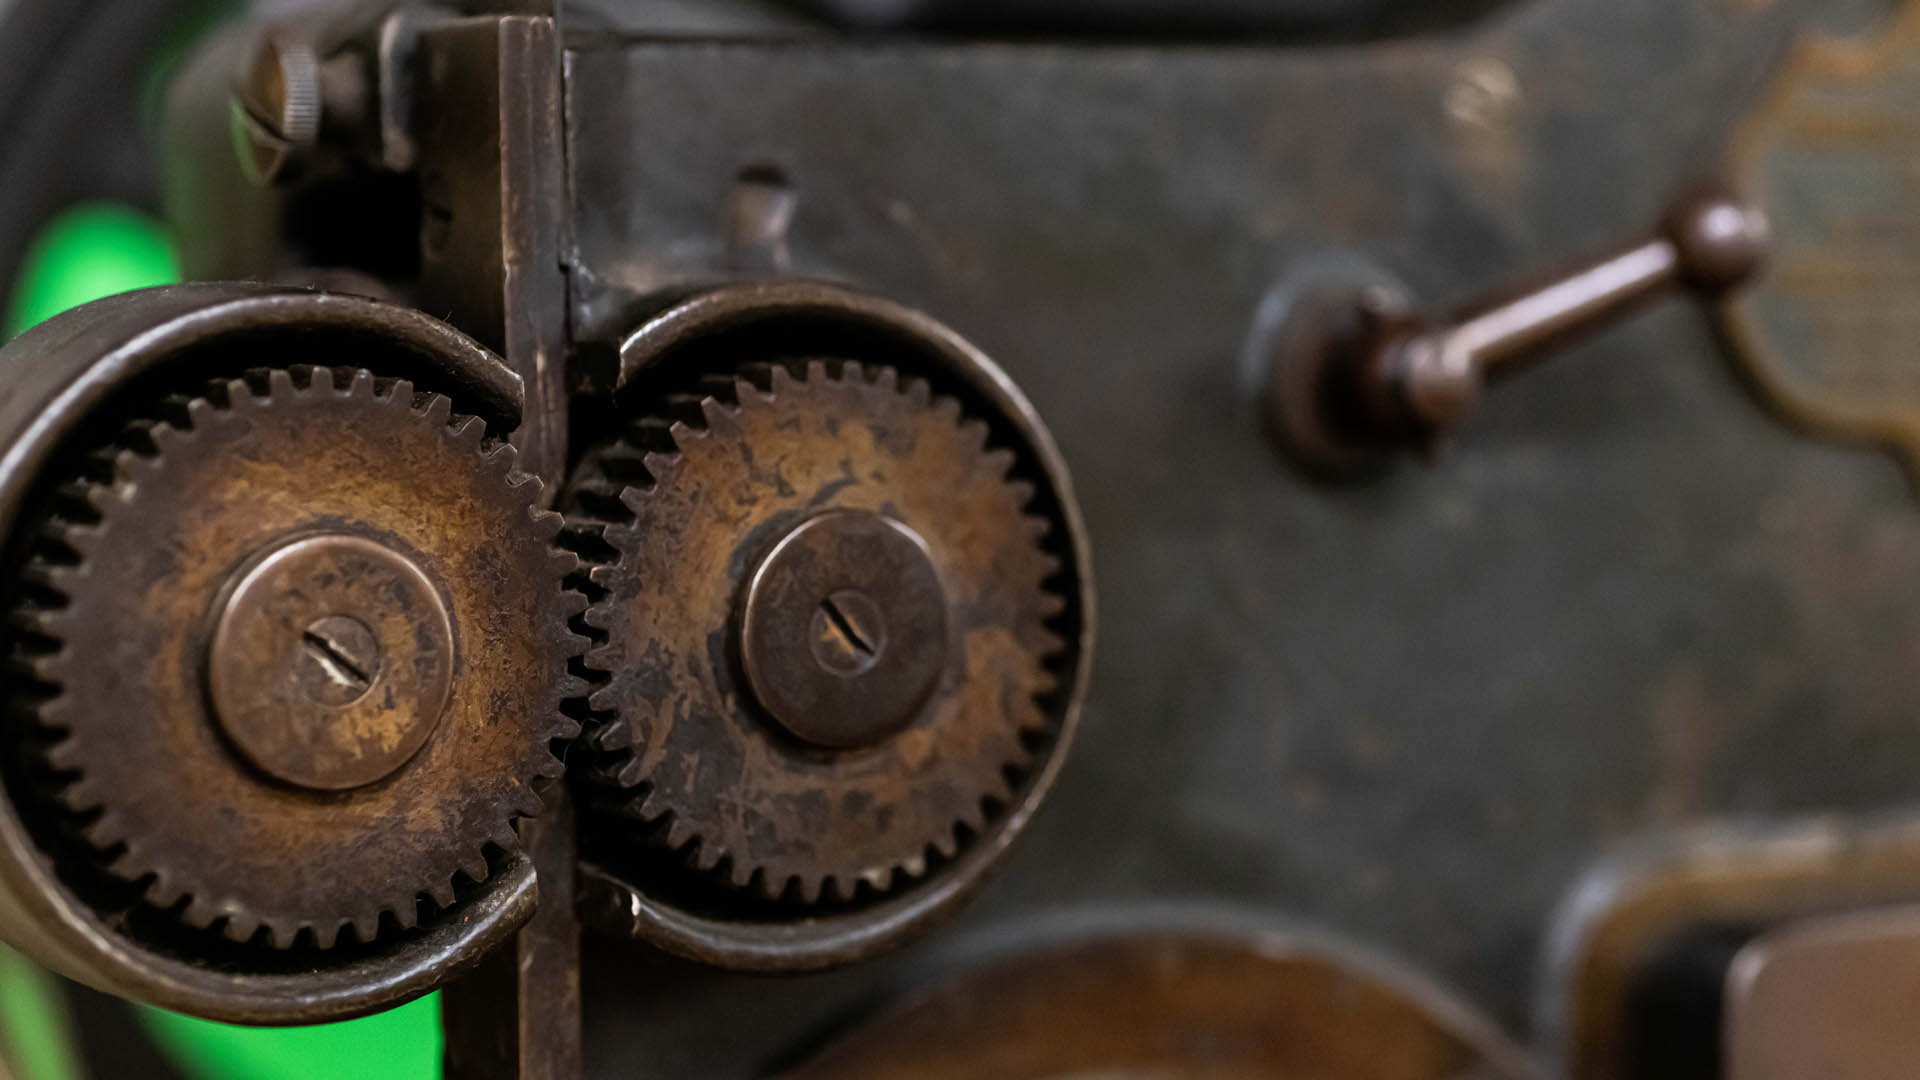 Detail of two metal gears on the side of a wire stitching machine